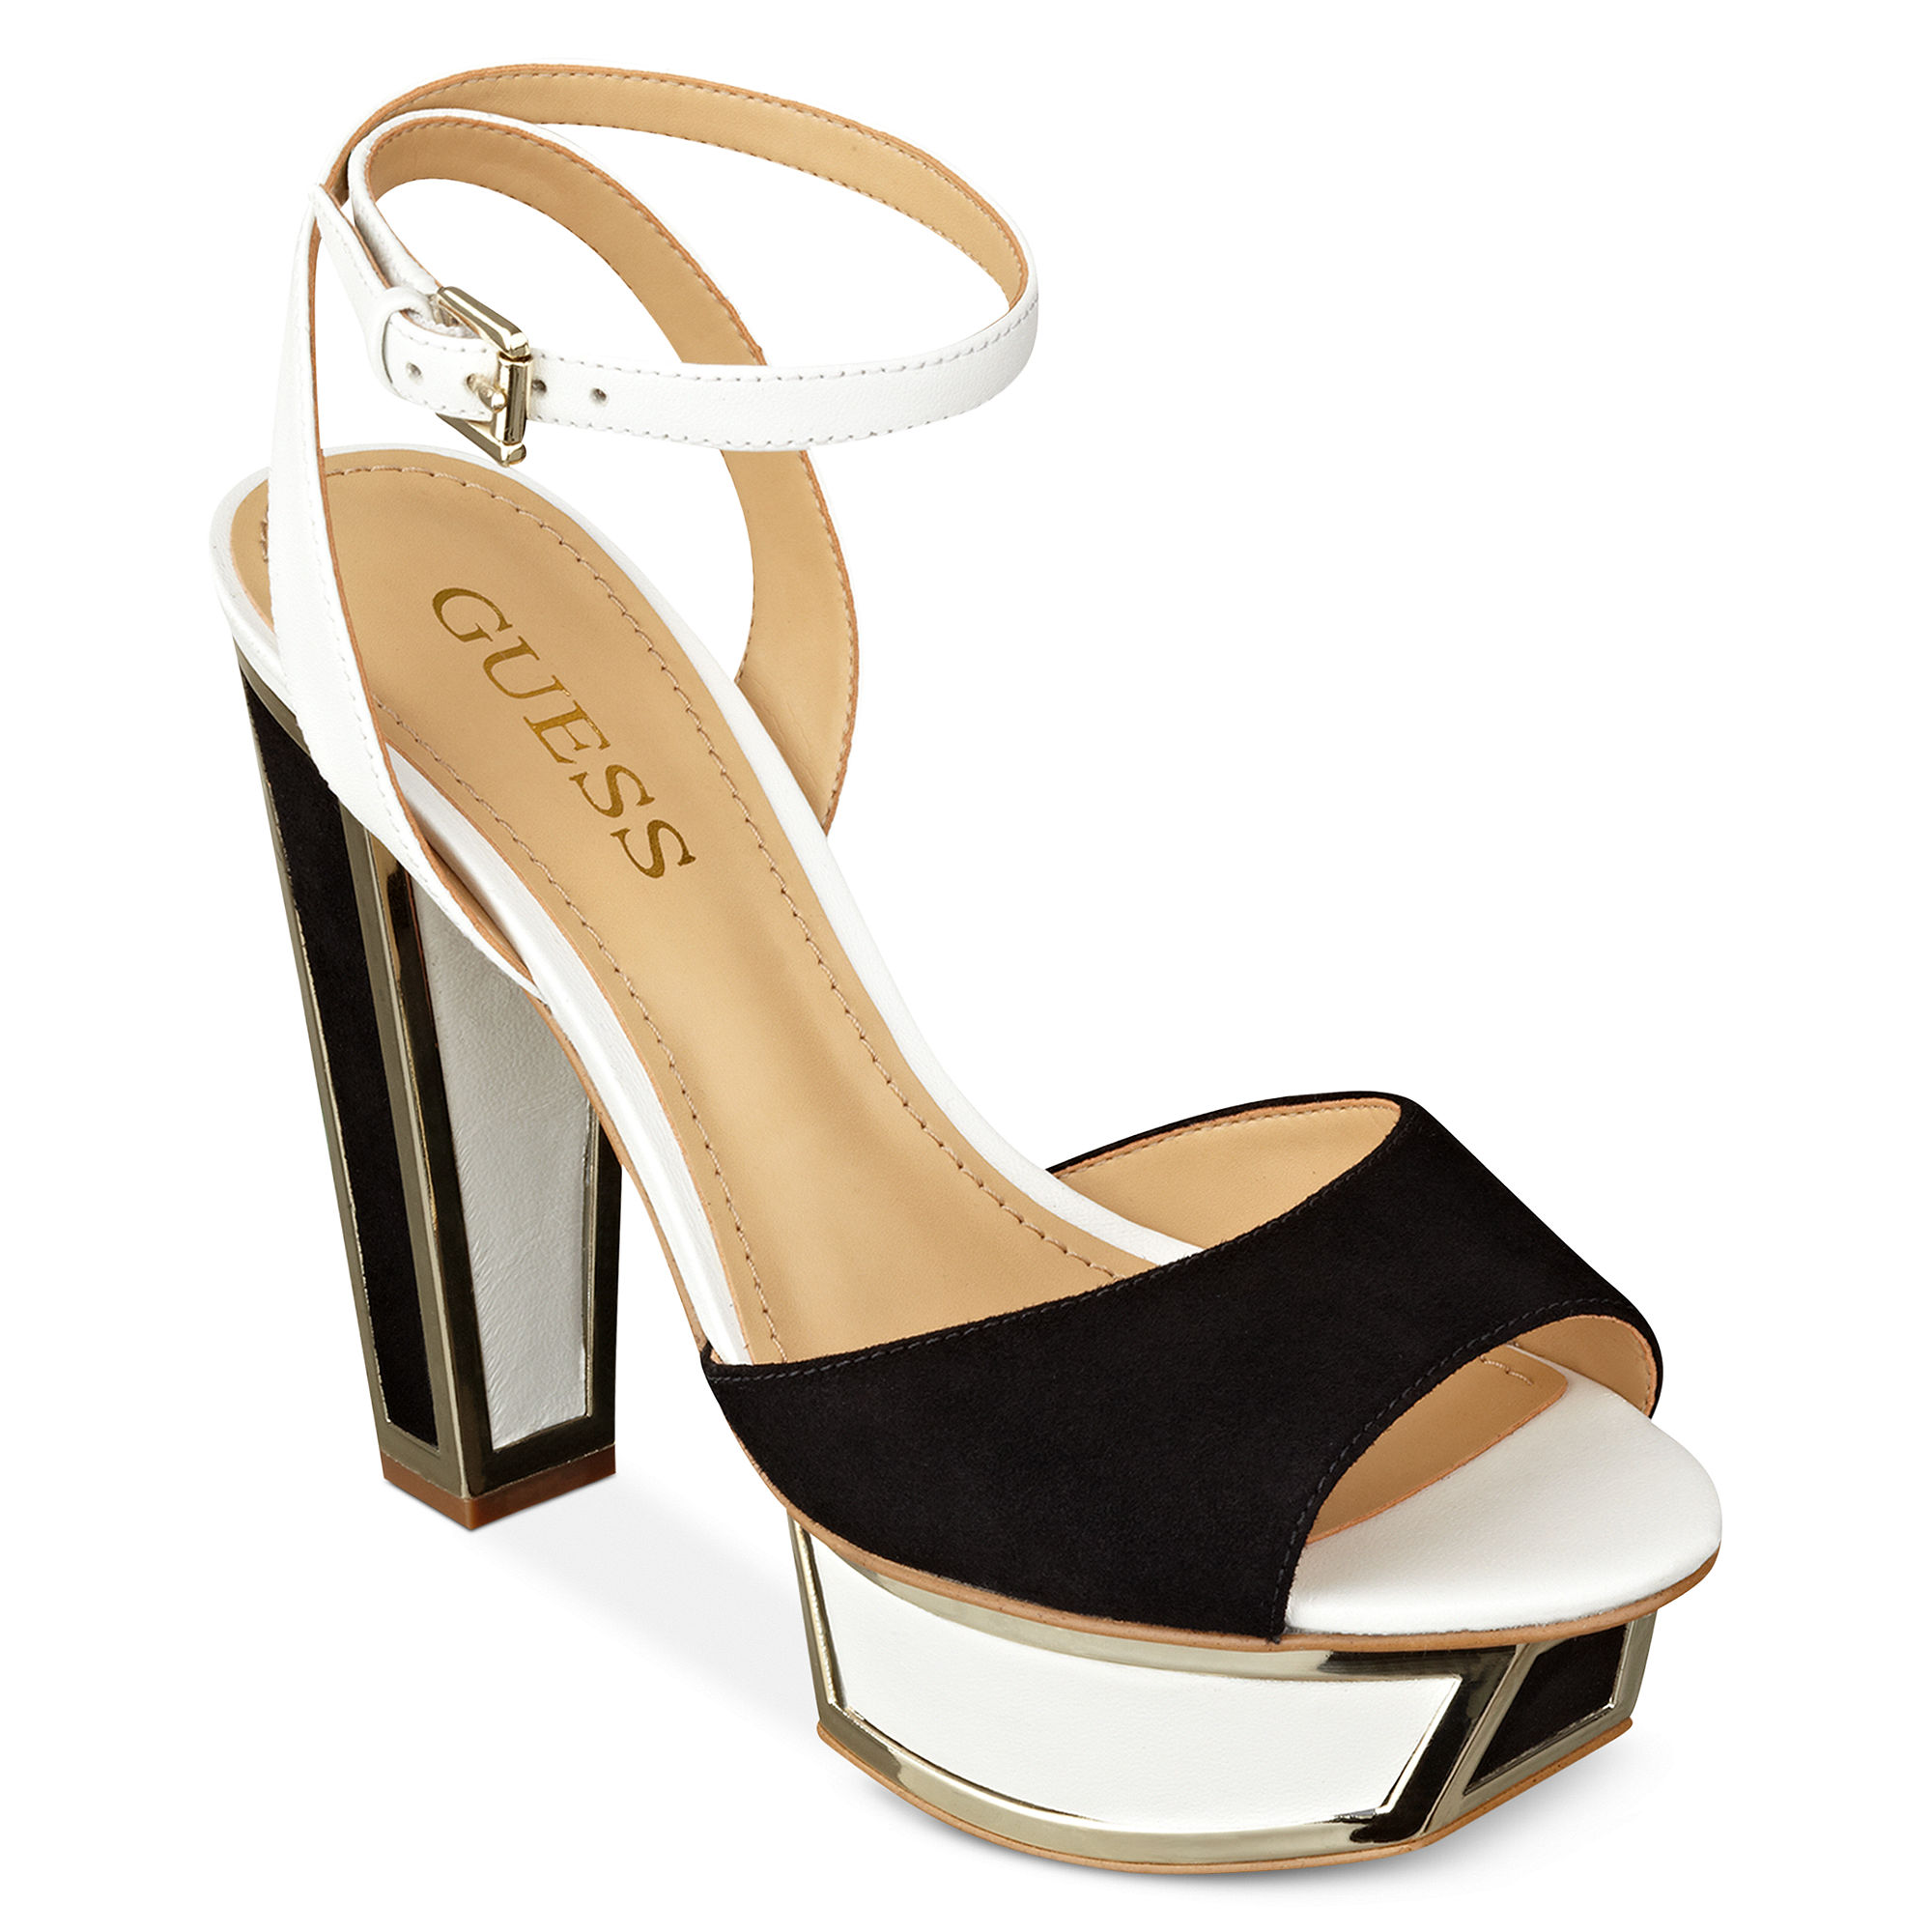 Creative Please Enable Javascript And Refresh The Page These Essential Tstrap Sandals Feature An Enamel Logo Plaque With Rhinestones And Goldtone Details Finished With A Corkinspired Insole And An Adjustable Ankle Strap With Buckle